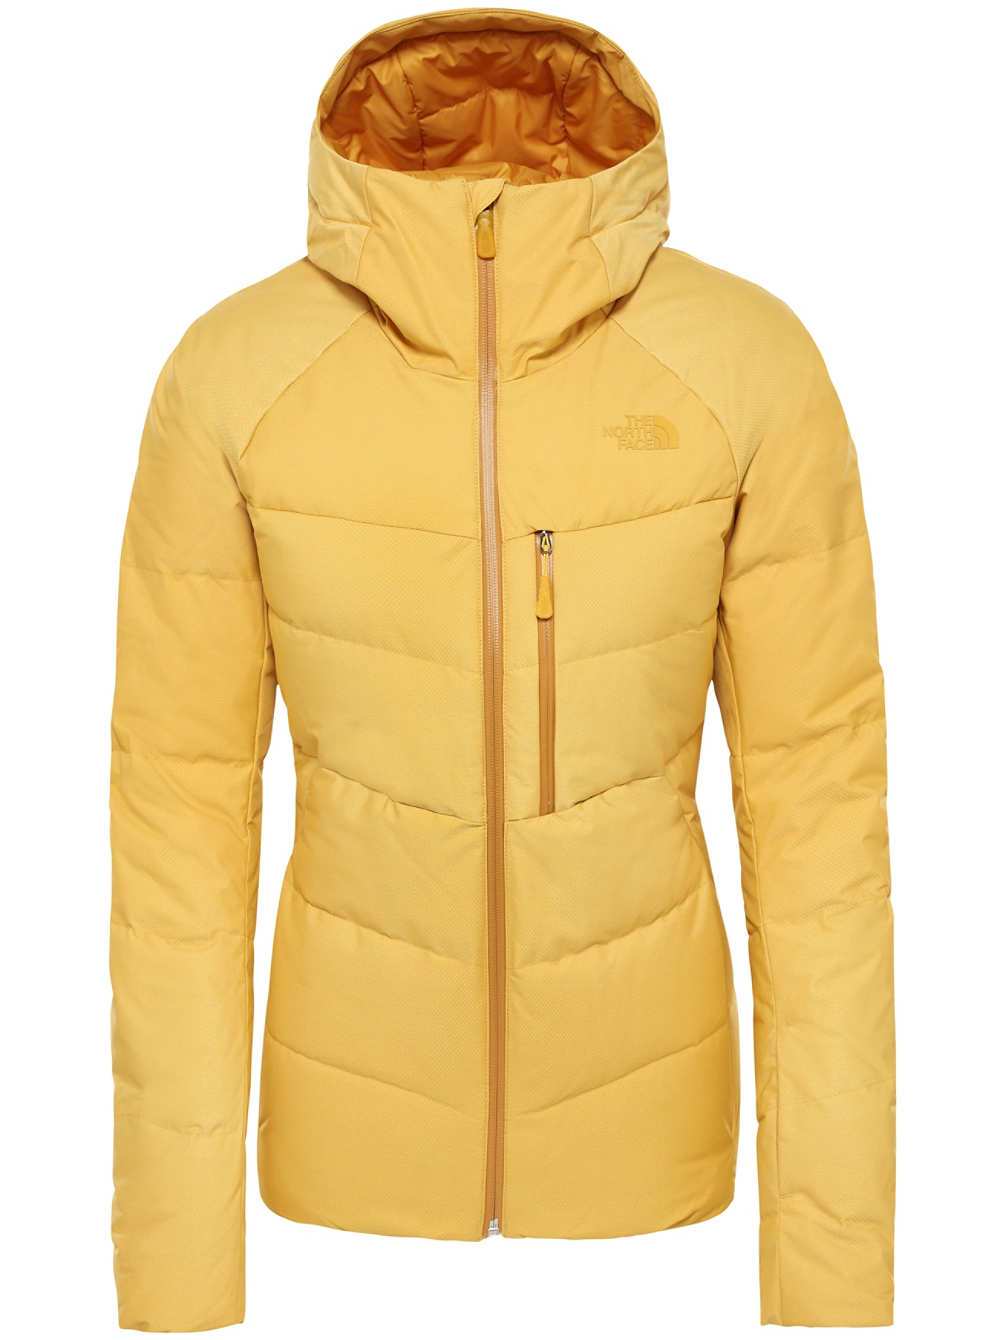 Geel dons jack The North Face Heavenly down jacket Golden spice